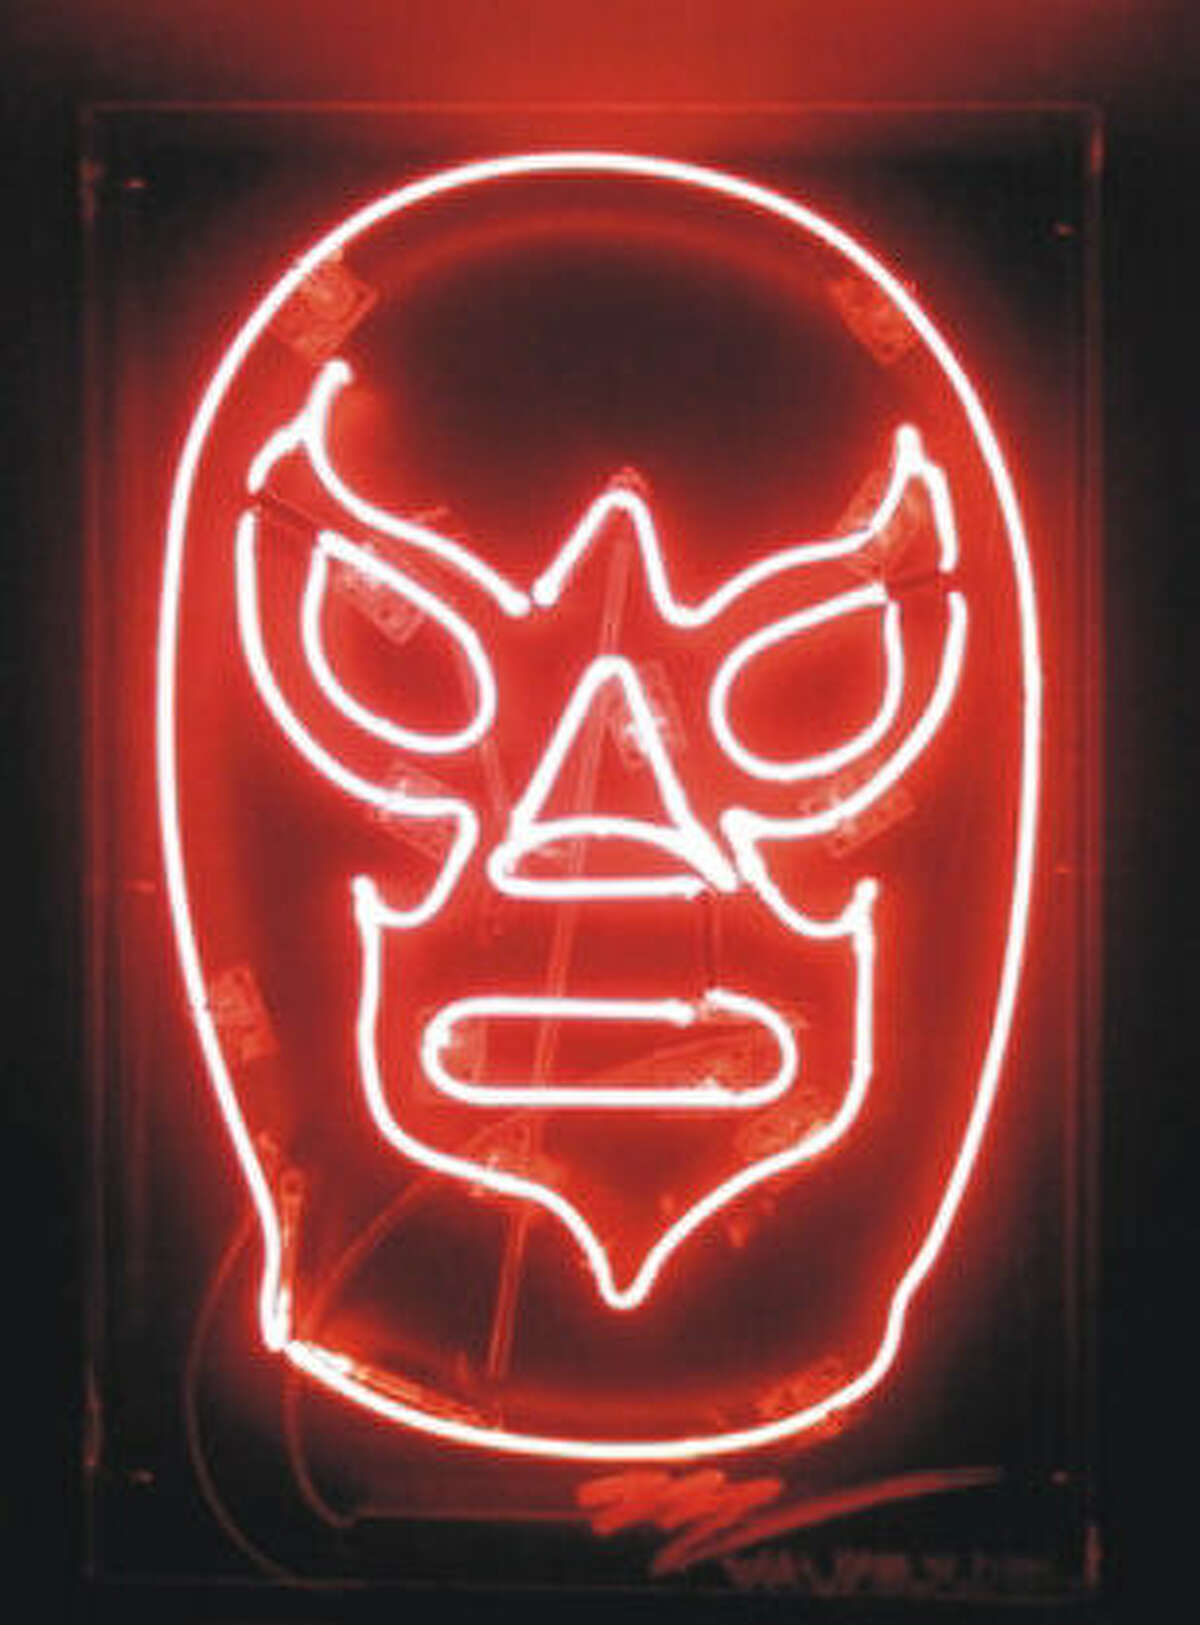 """Miguel Valverde's """"Hagase la Lucha"""" is a neon sculpture of a Mexican wrestler's mask featured in Arte Chihuahua."""